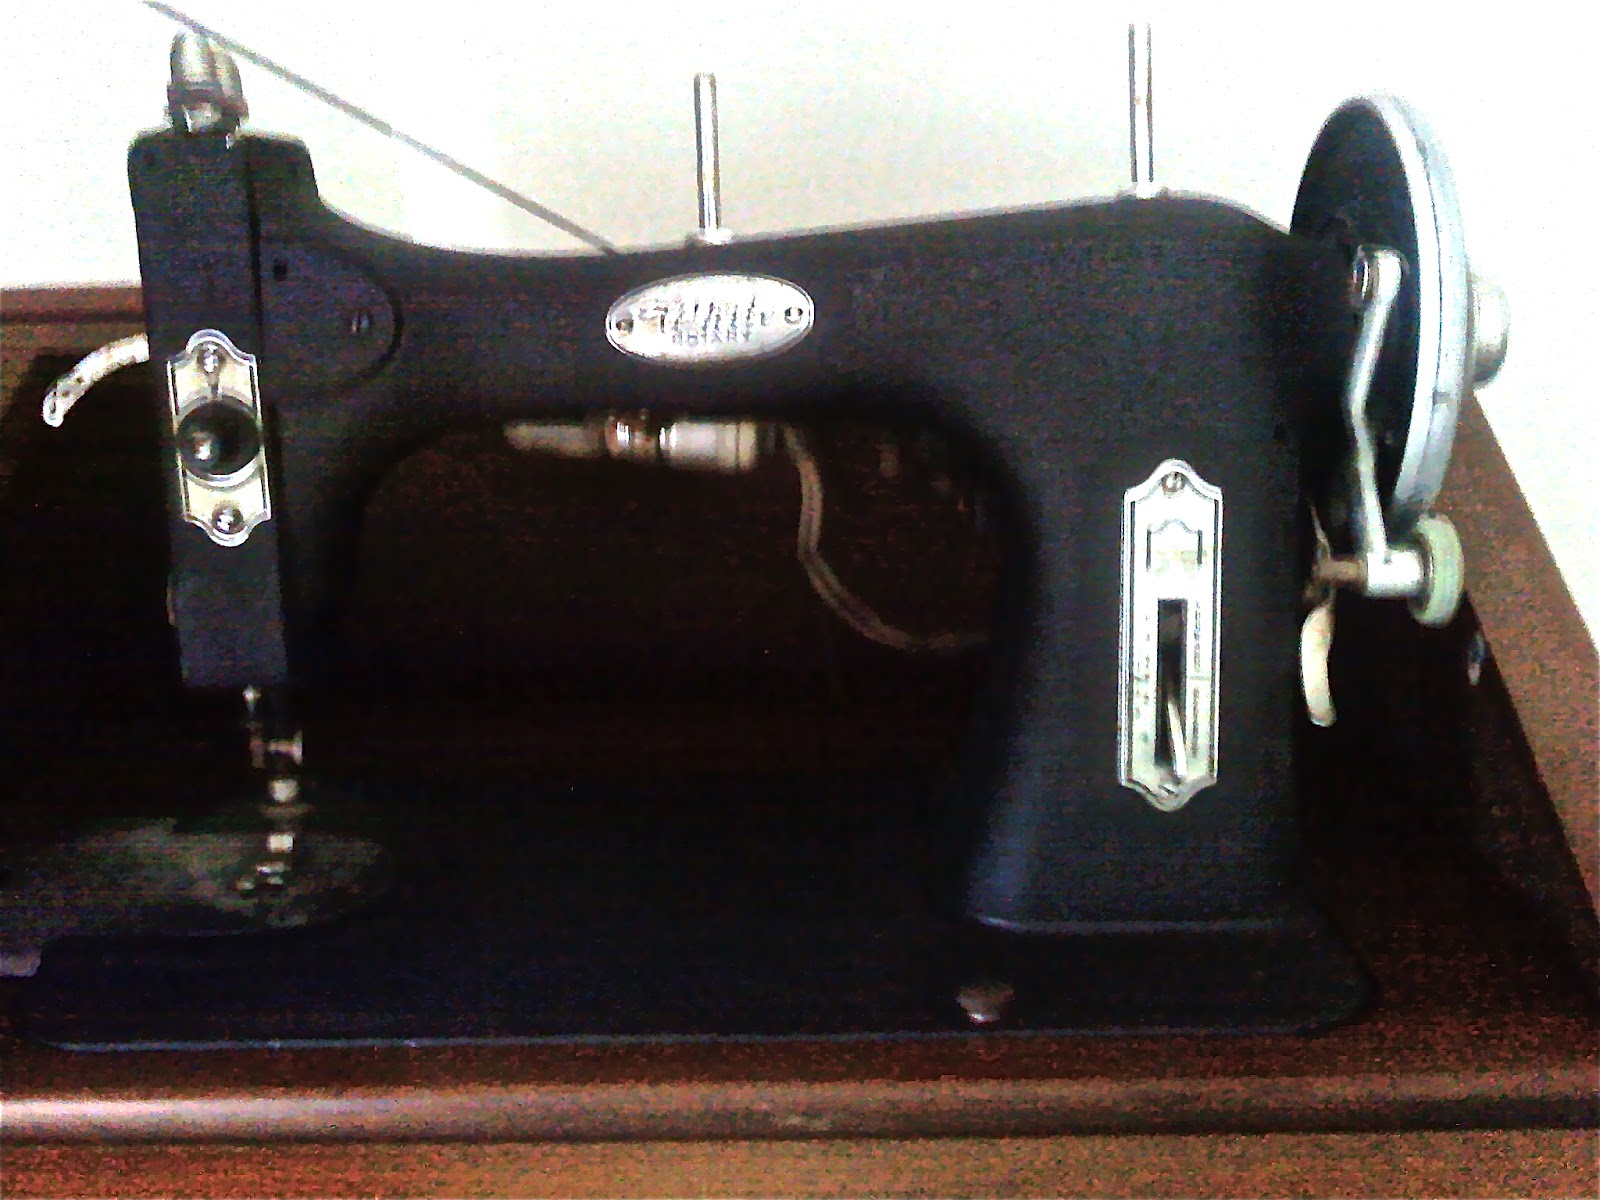 This Is A White Rotary Sewing Machine The Company Was Founded In 1858 Machusetts By Thomas H It As